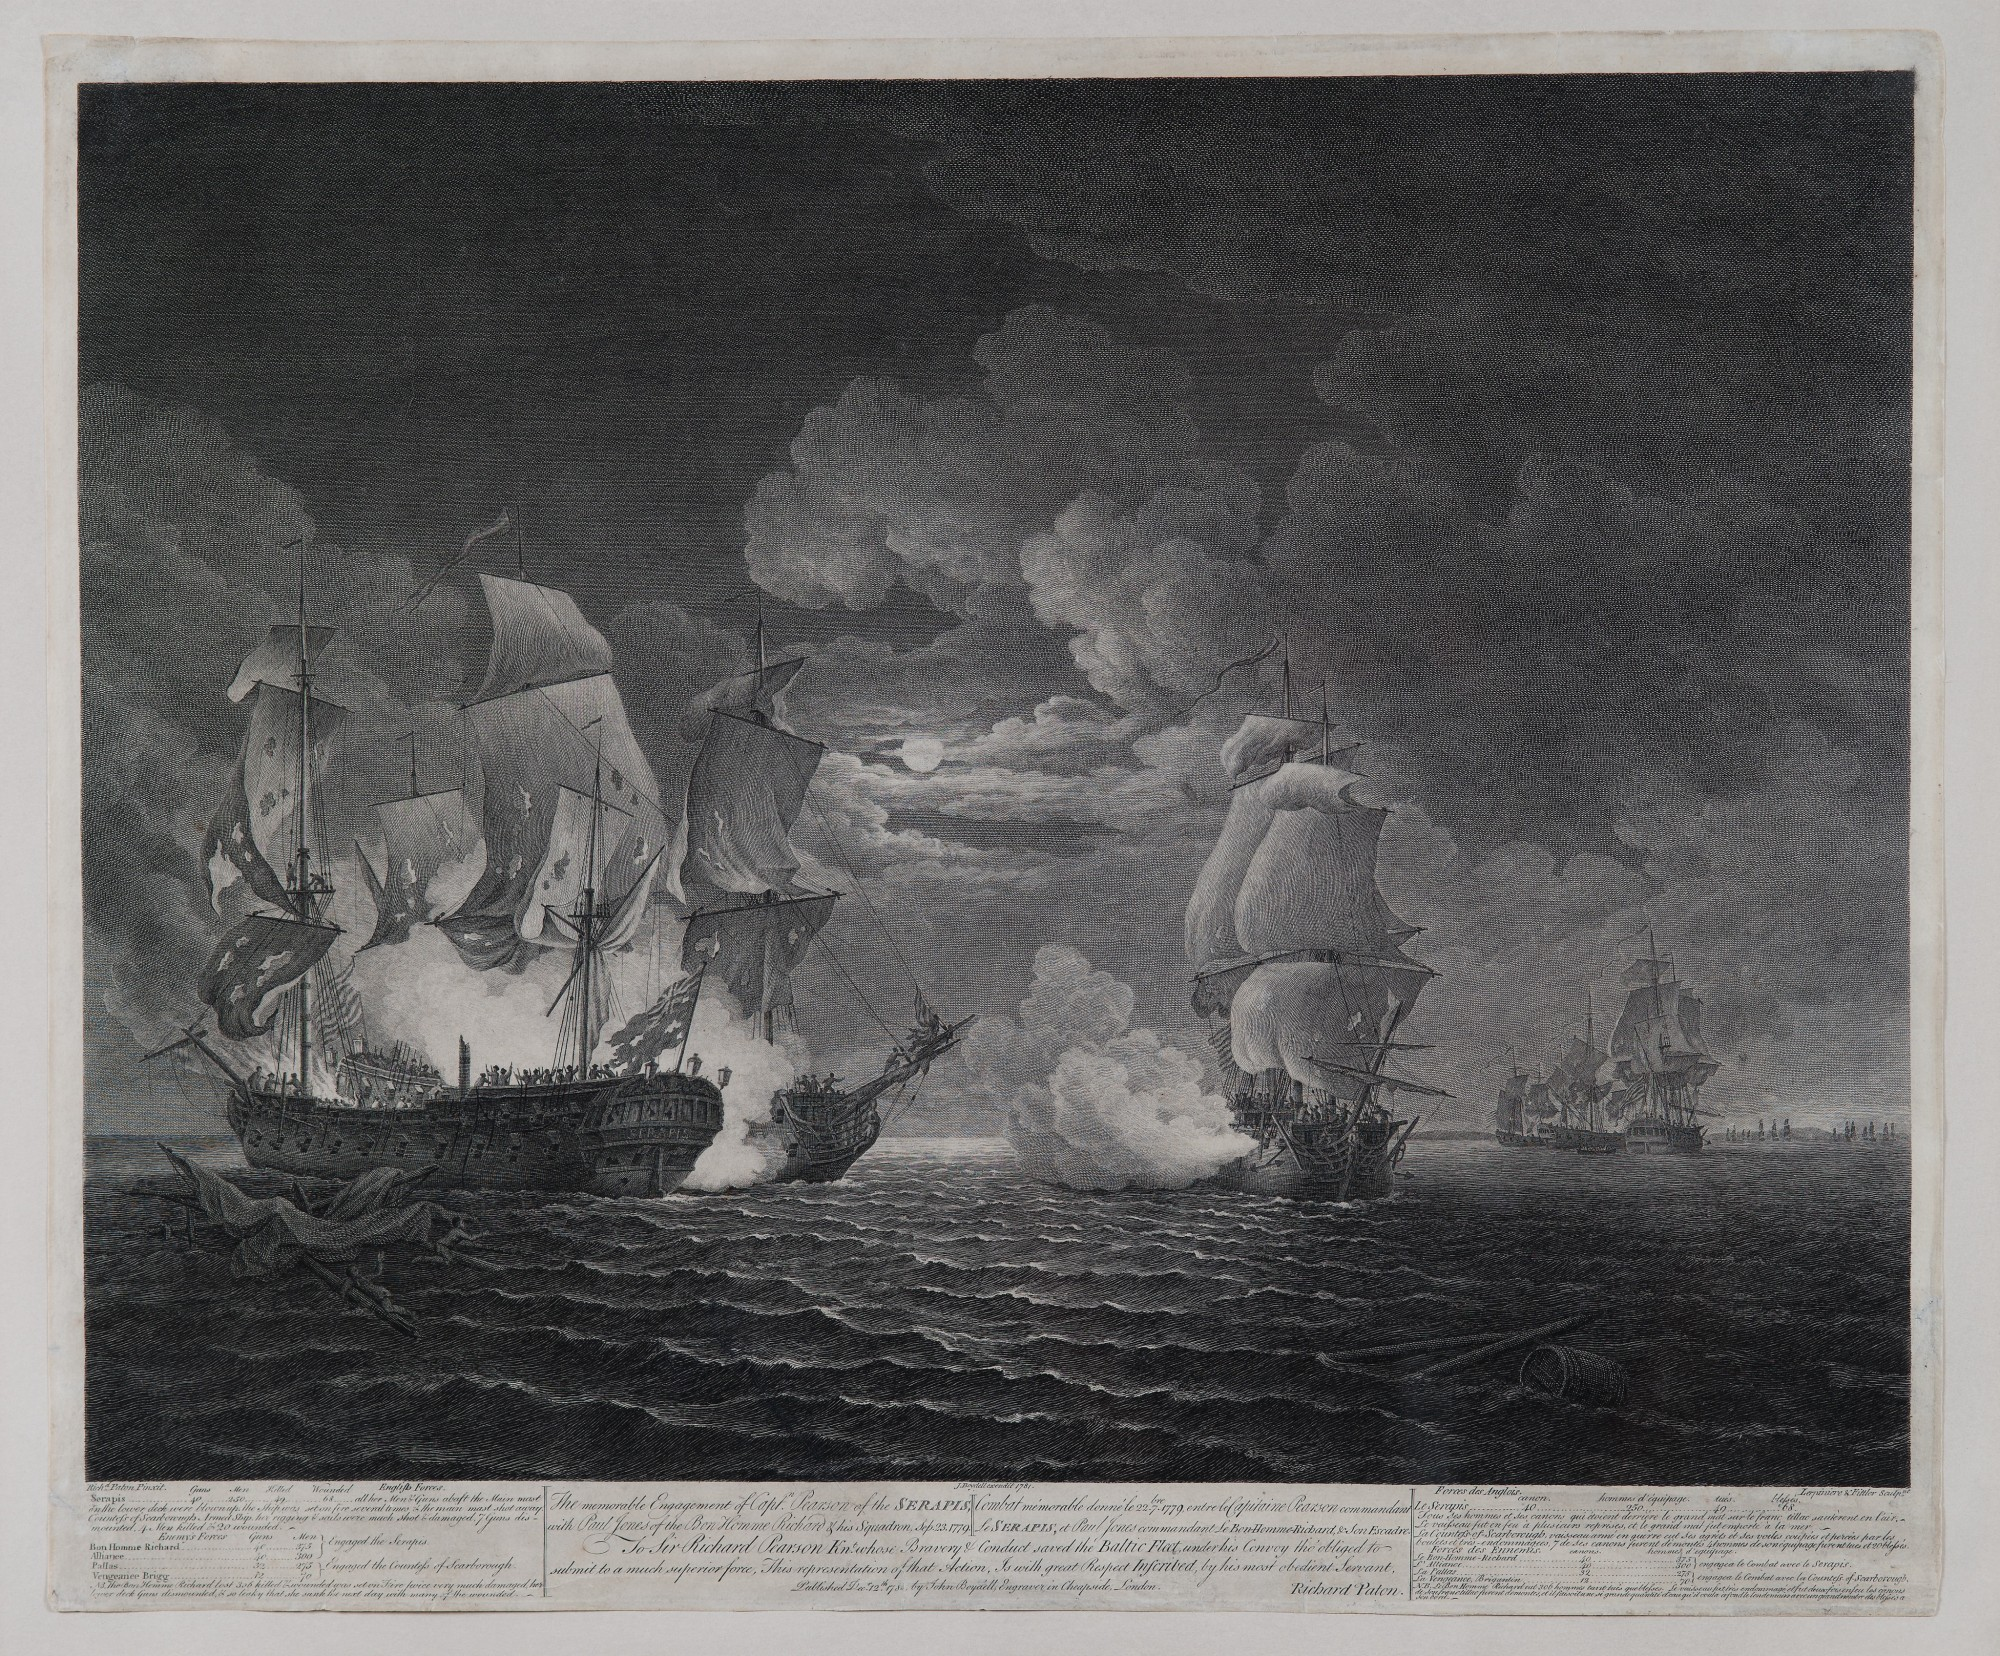 The Memorable Engagement of Capt'n Pearson of the Serapis, with Paul Jones  of